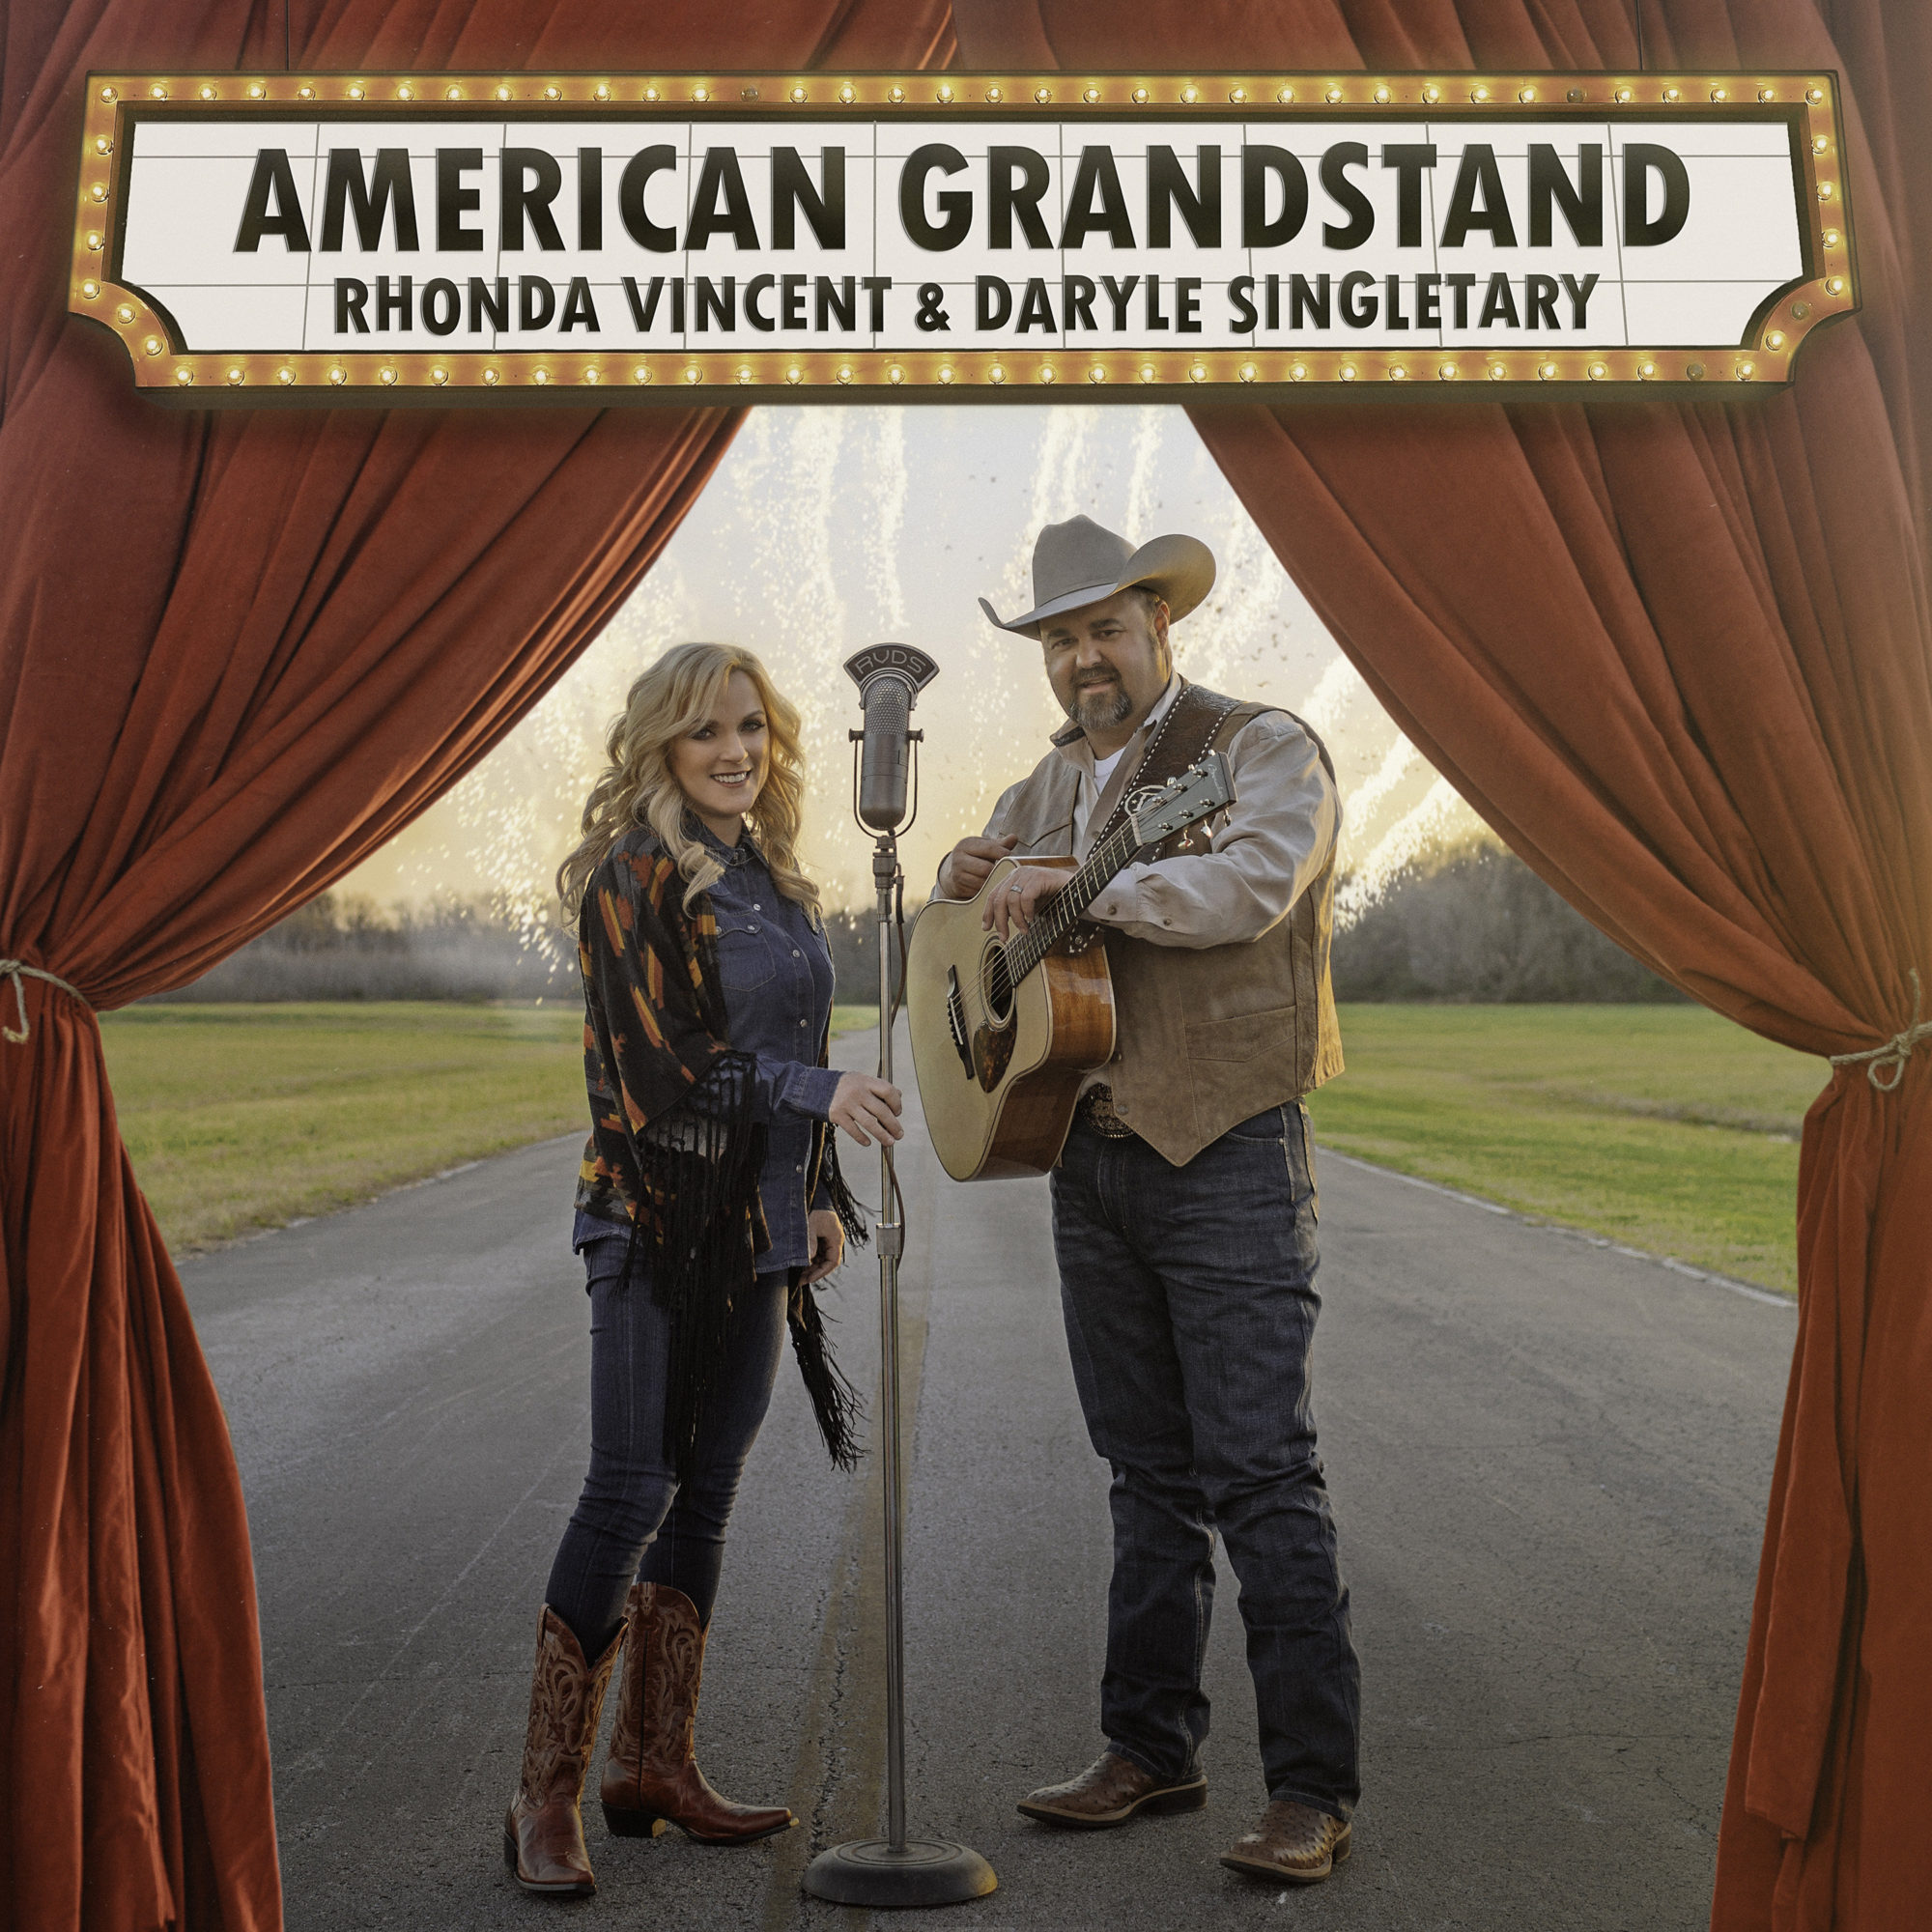 Daryle Singletary & Rhonda Vincent Team-Up For American Grandstand